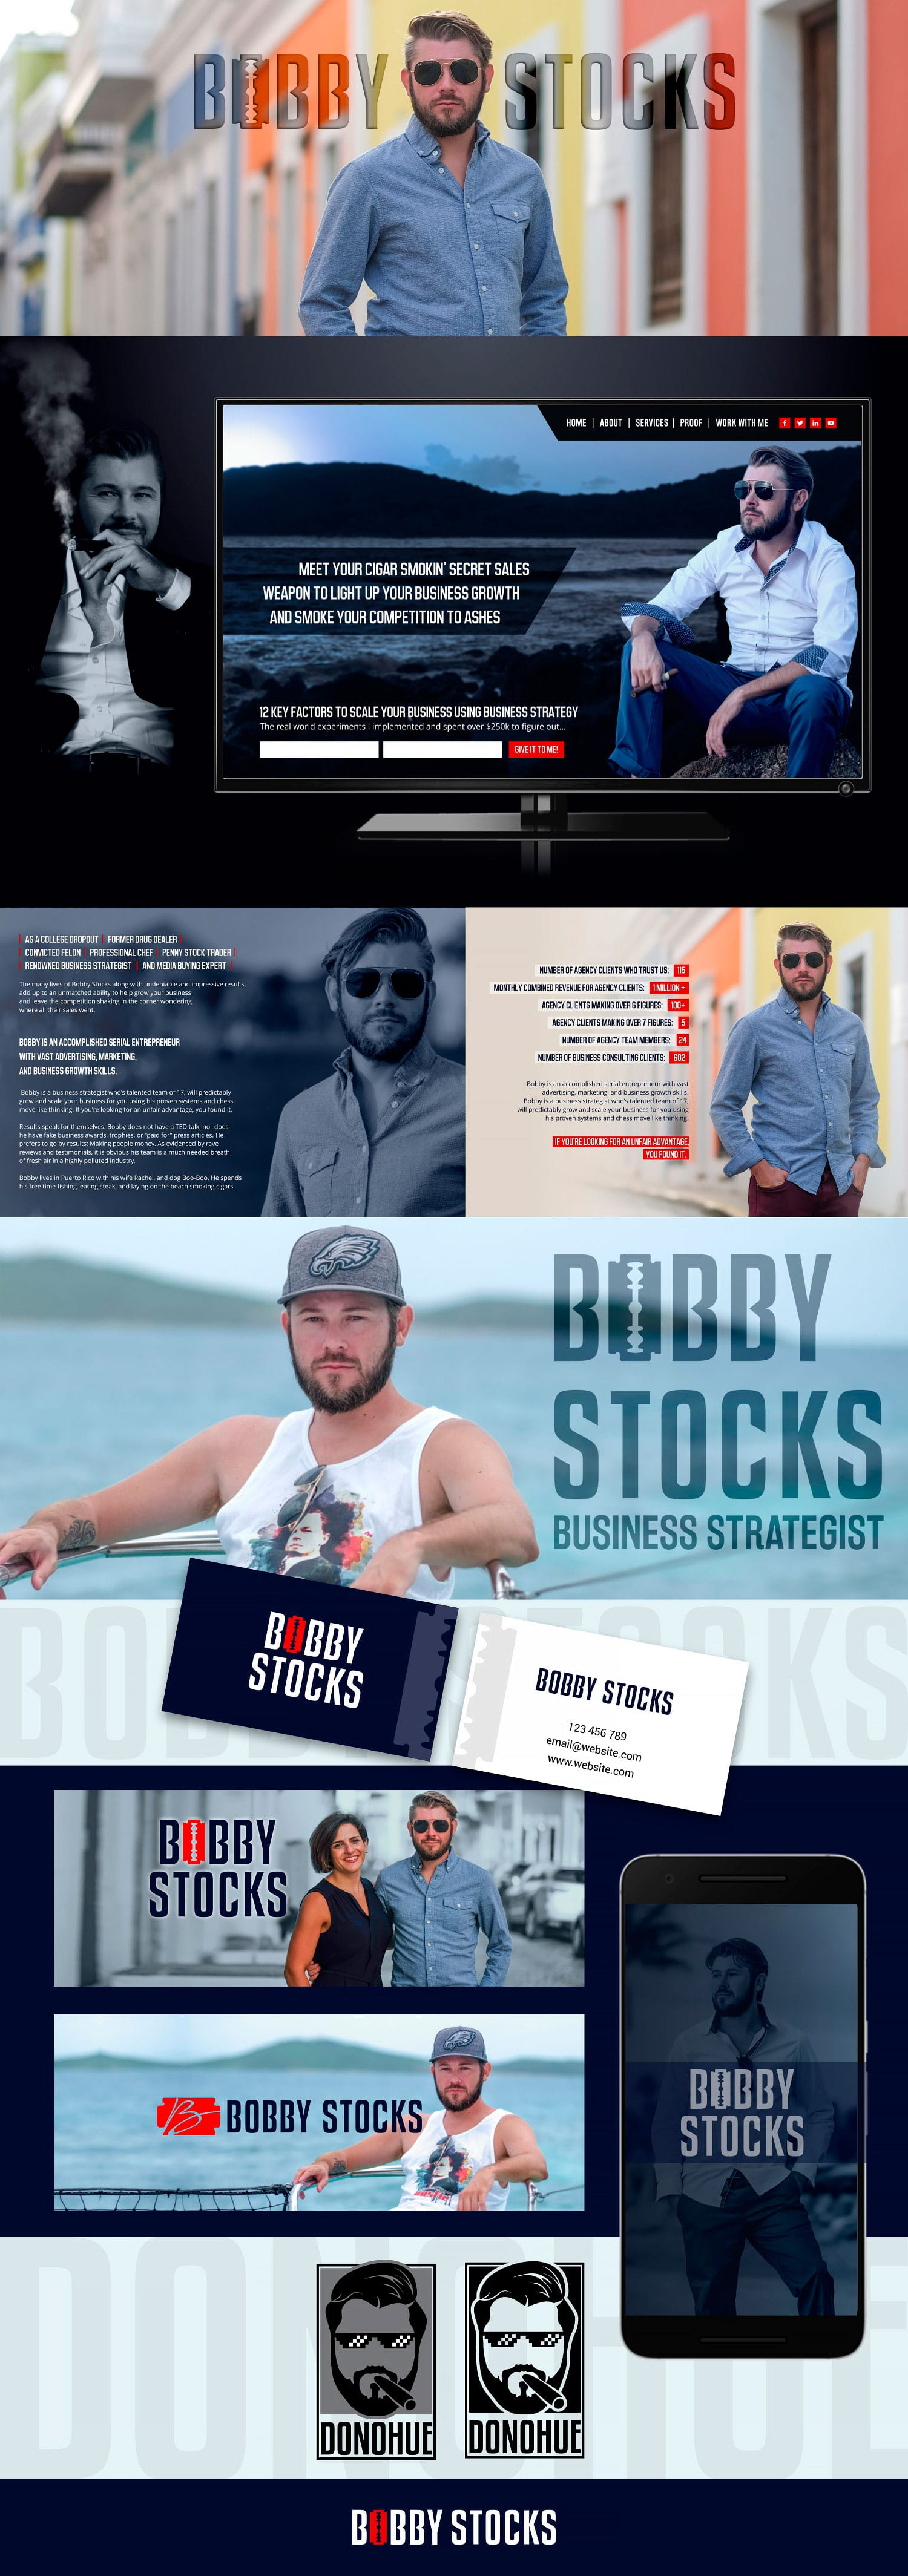 Mockup-Bobby-Stocks